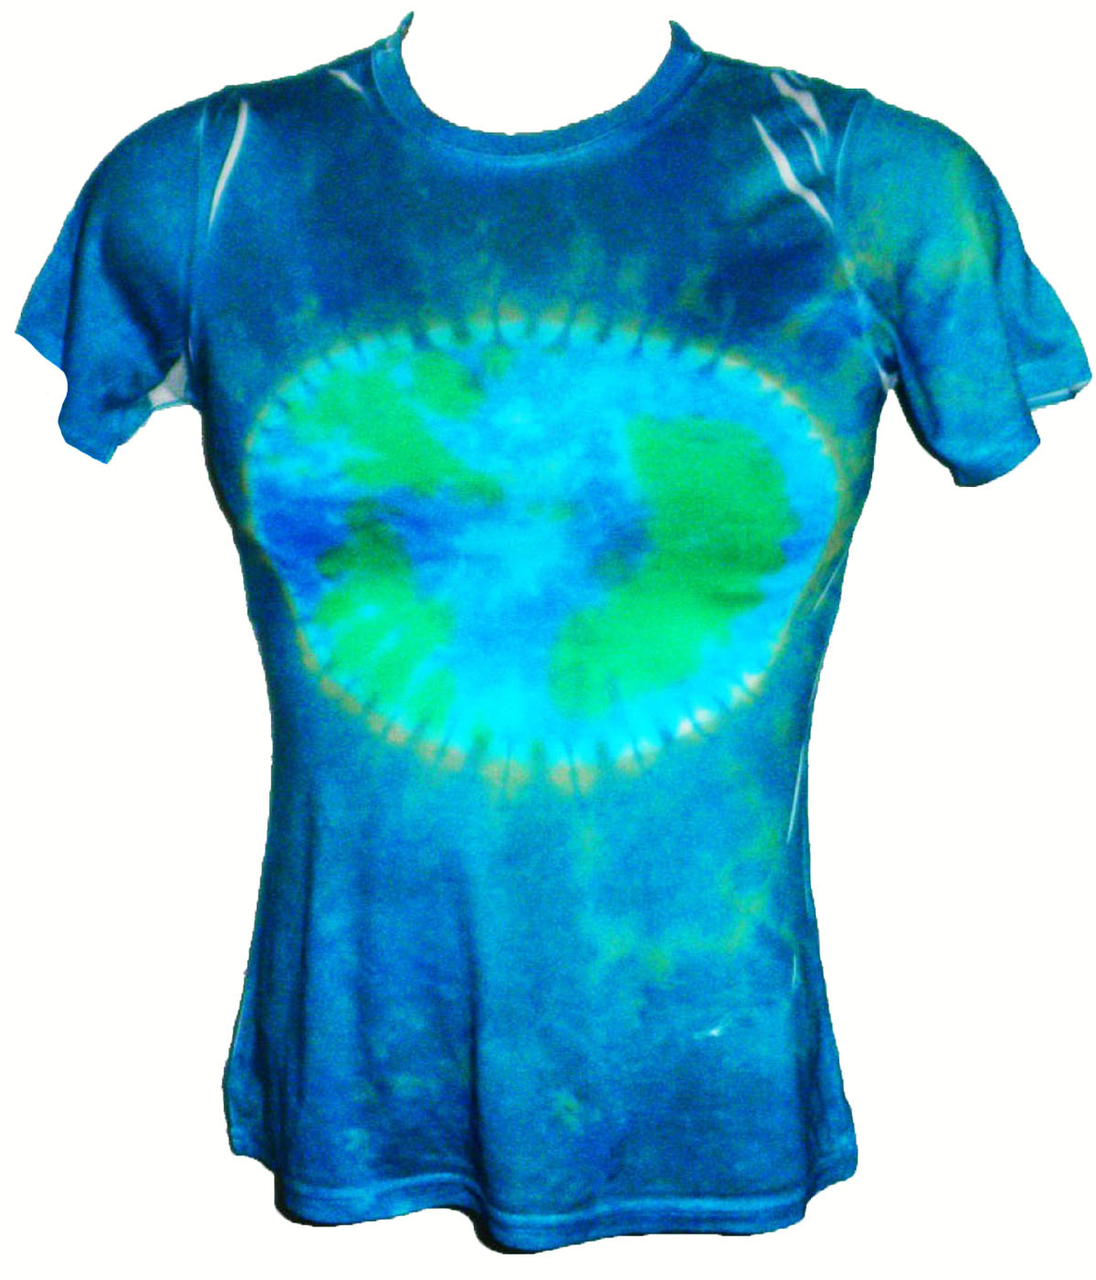 Earth Day Ladies Tie Dye T-Shirt